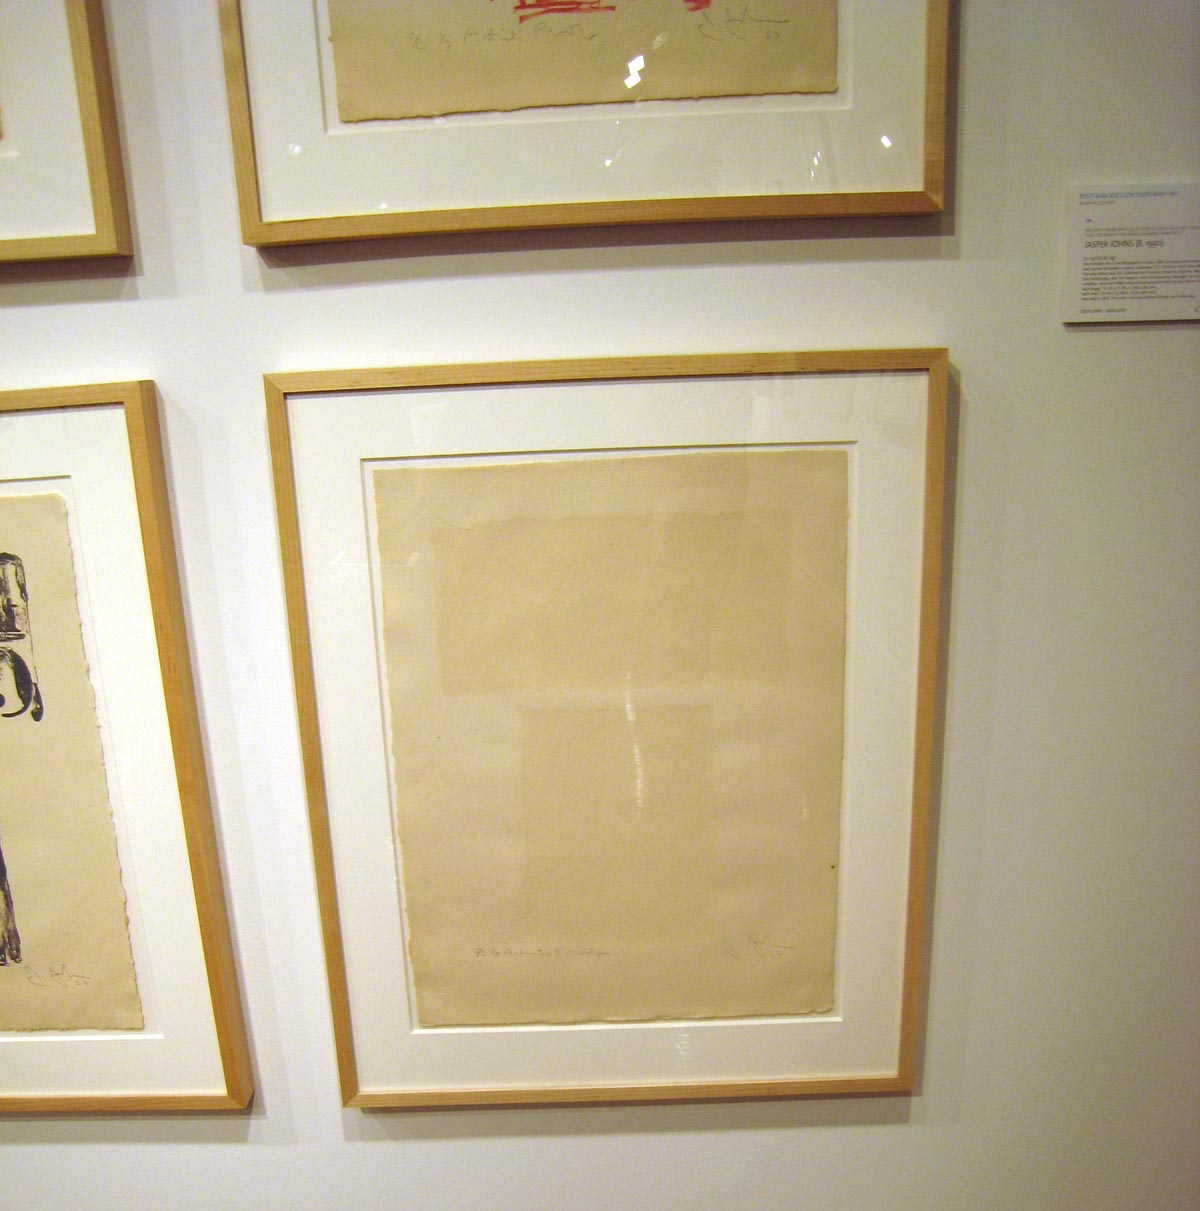 Do You See the Jasper Johns Numeral 9 in this Photo?